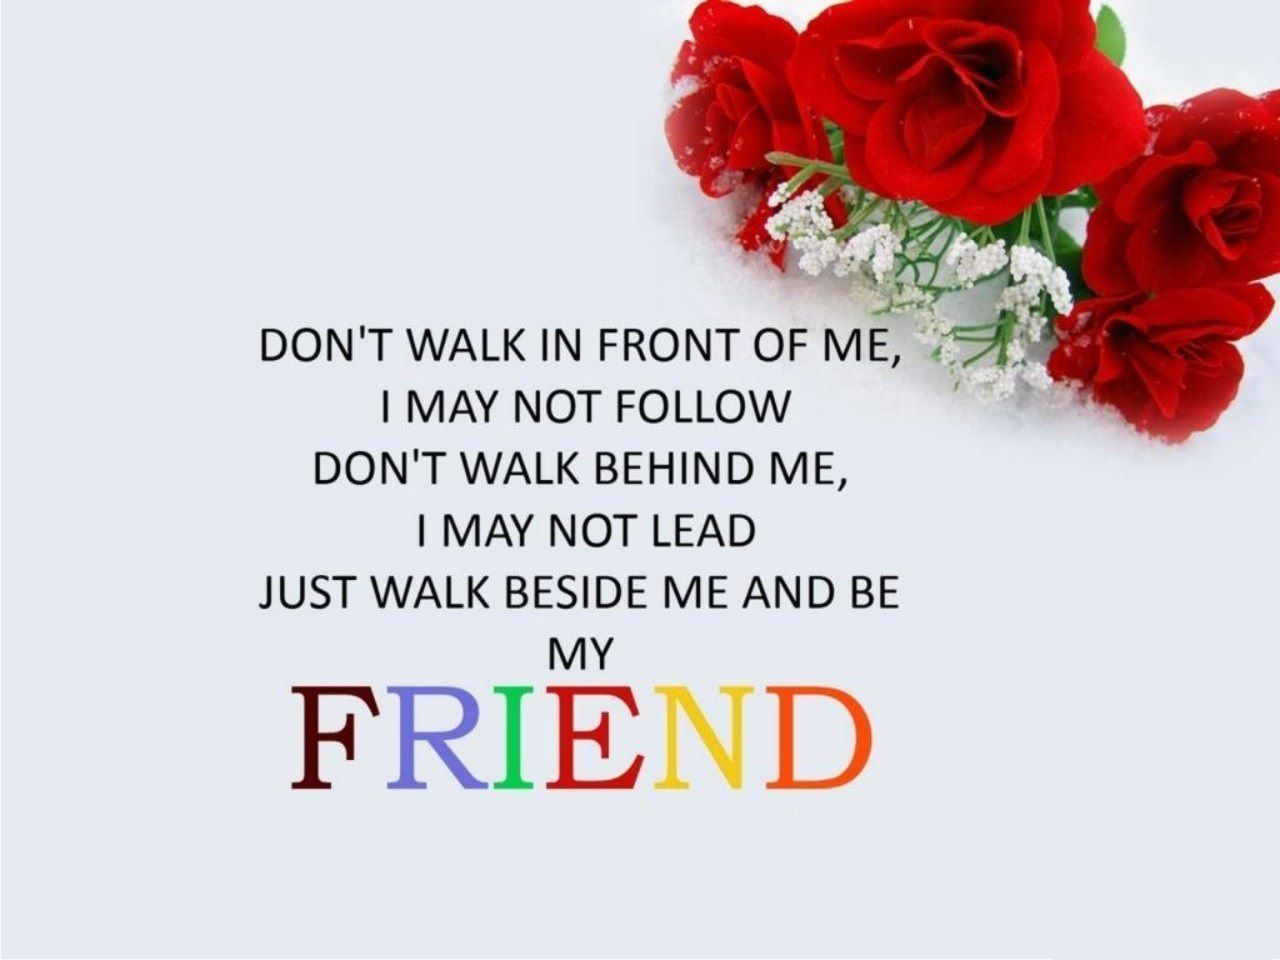 Friendship Day Best Inspirational Quotes Pictures Friendship Day Quotes Friendship Day Quotes Images Happy Friendship Friendship rose day images for friends